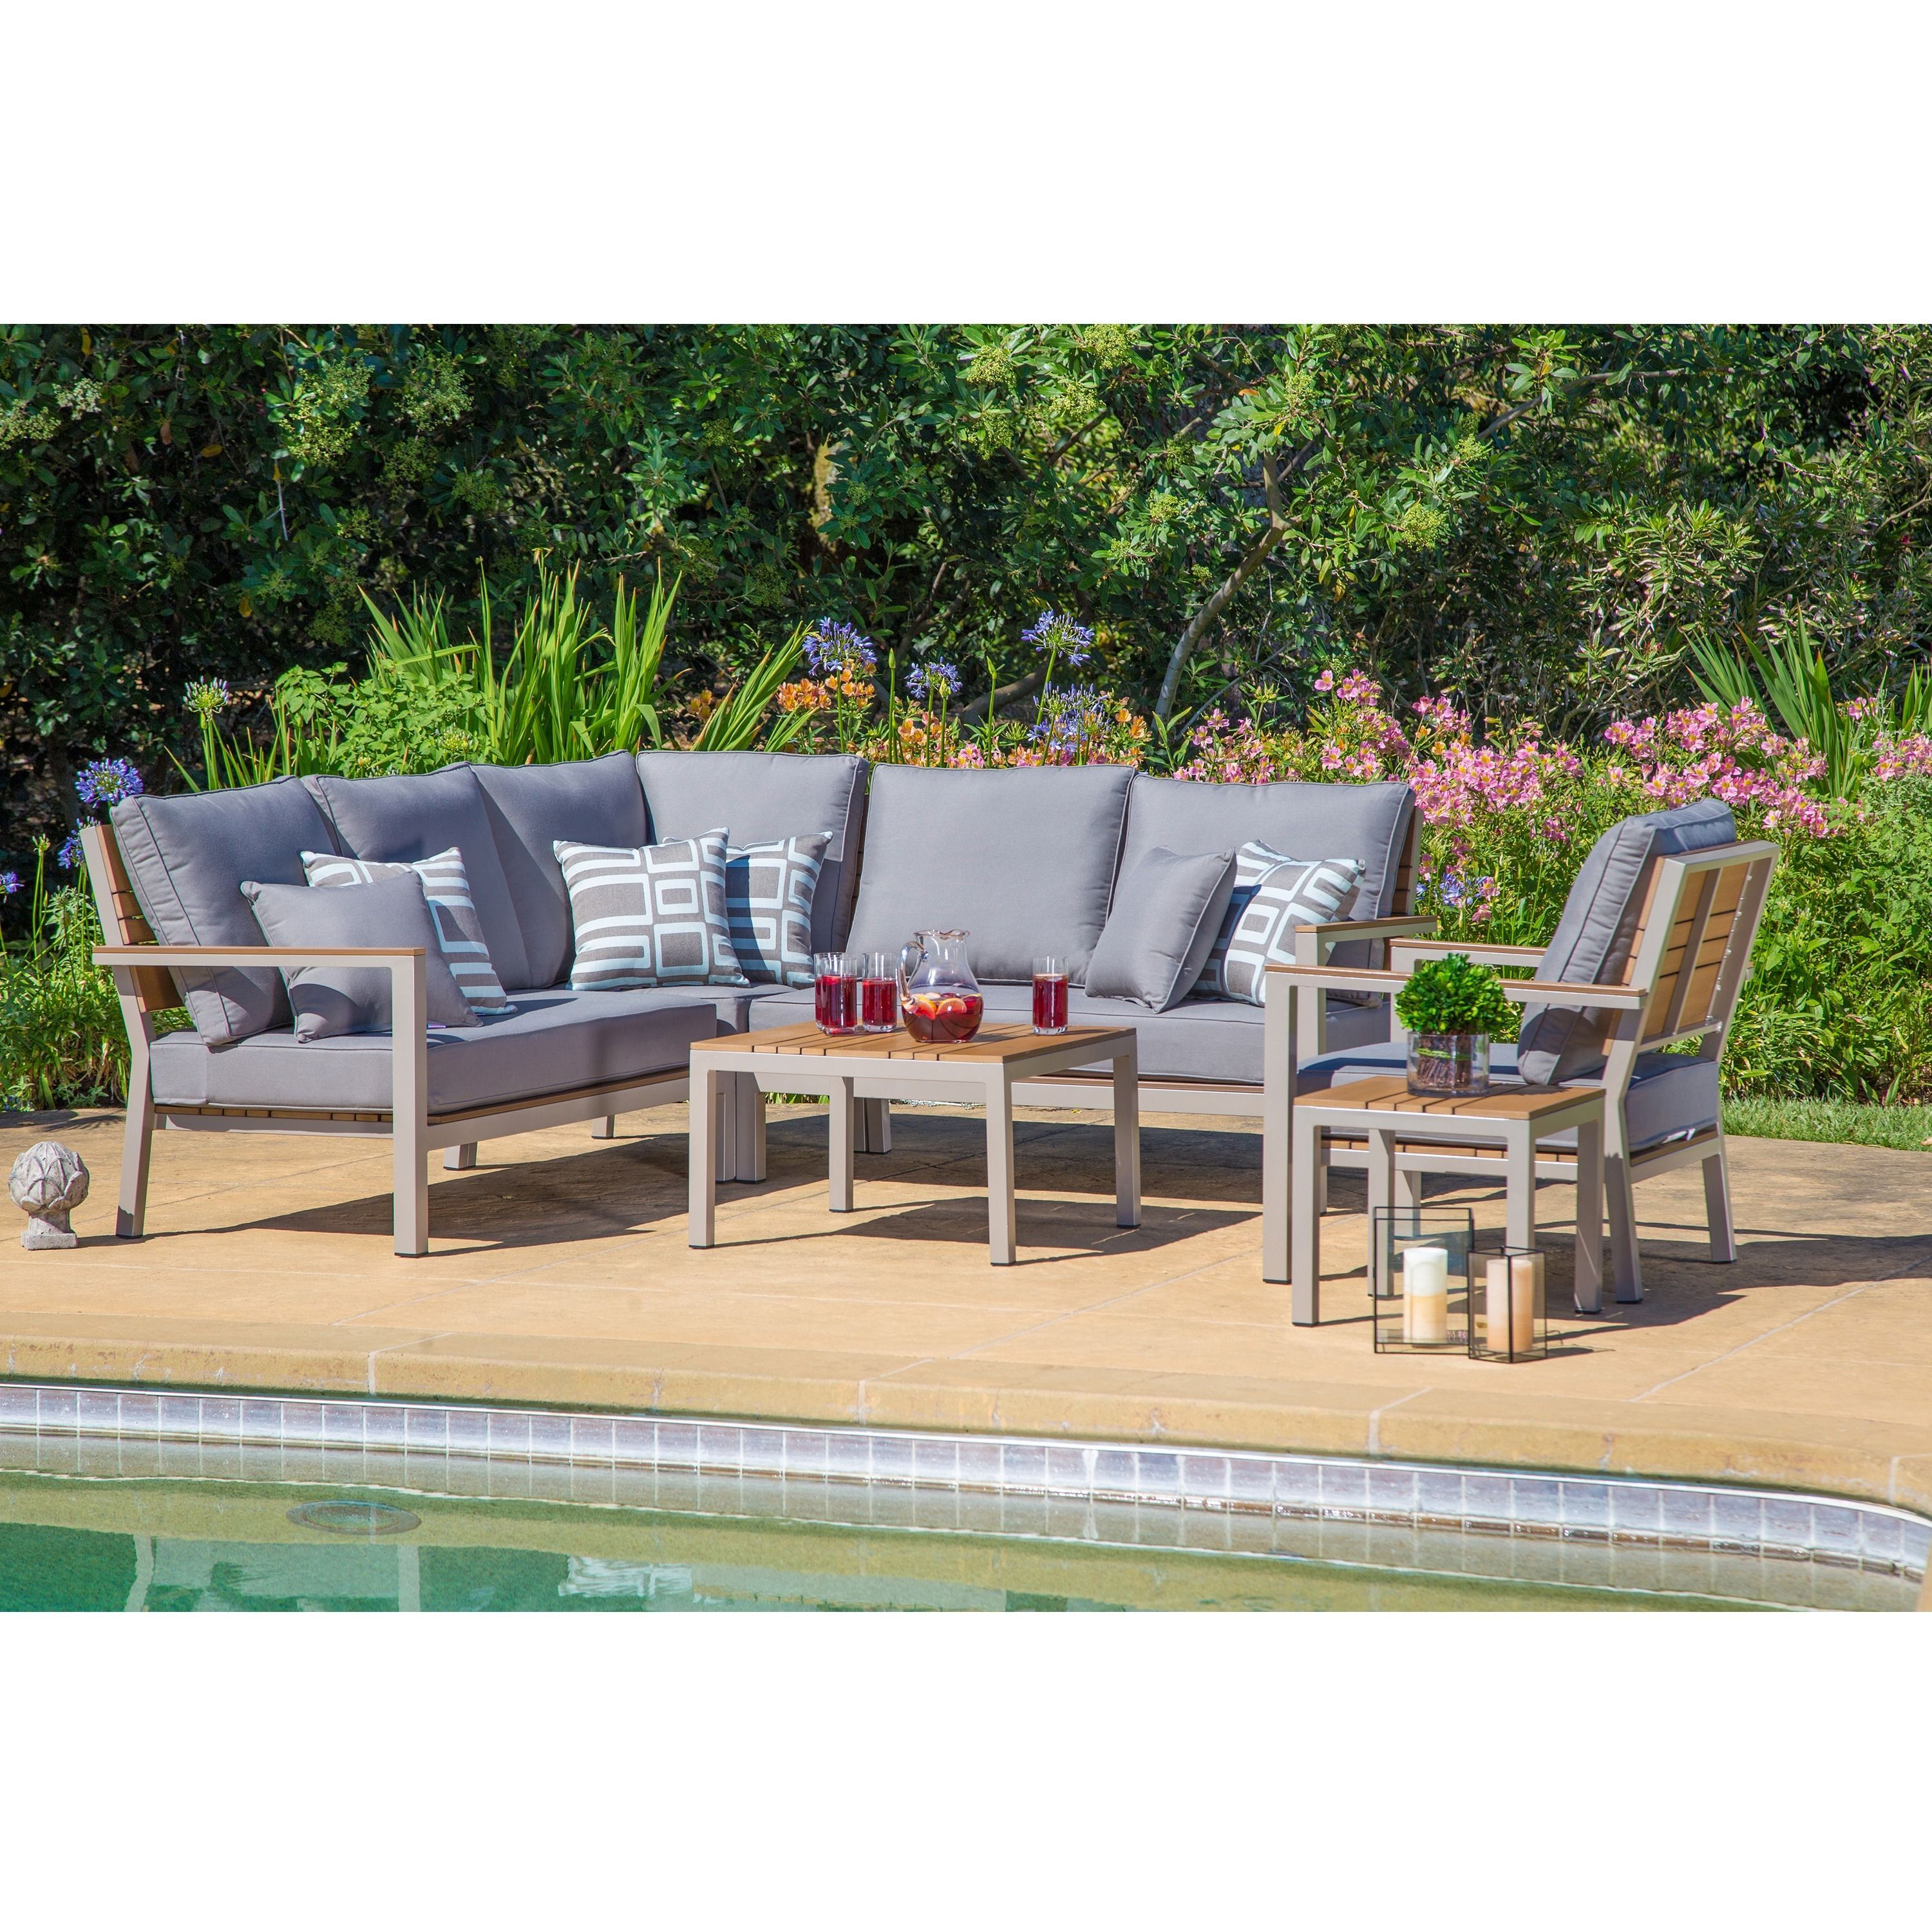 Corvus Jasmine Heavy Duty Aluminum Outdoor Deep Seating Set With Sunbrella  Fabric Cushions   Overstock Shopping   Big Discounts On Corvus Sofas, ...